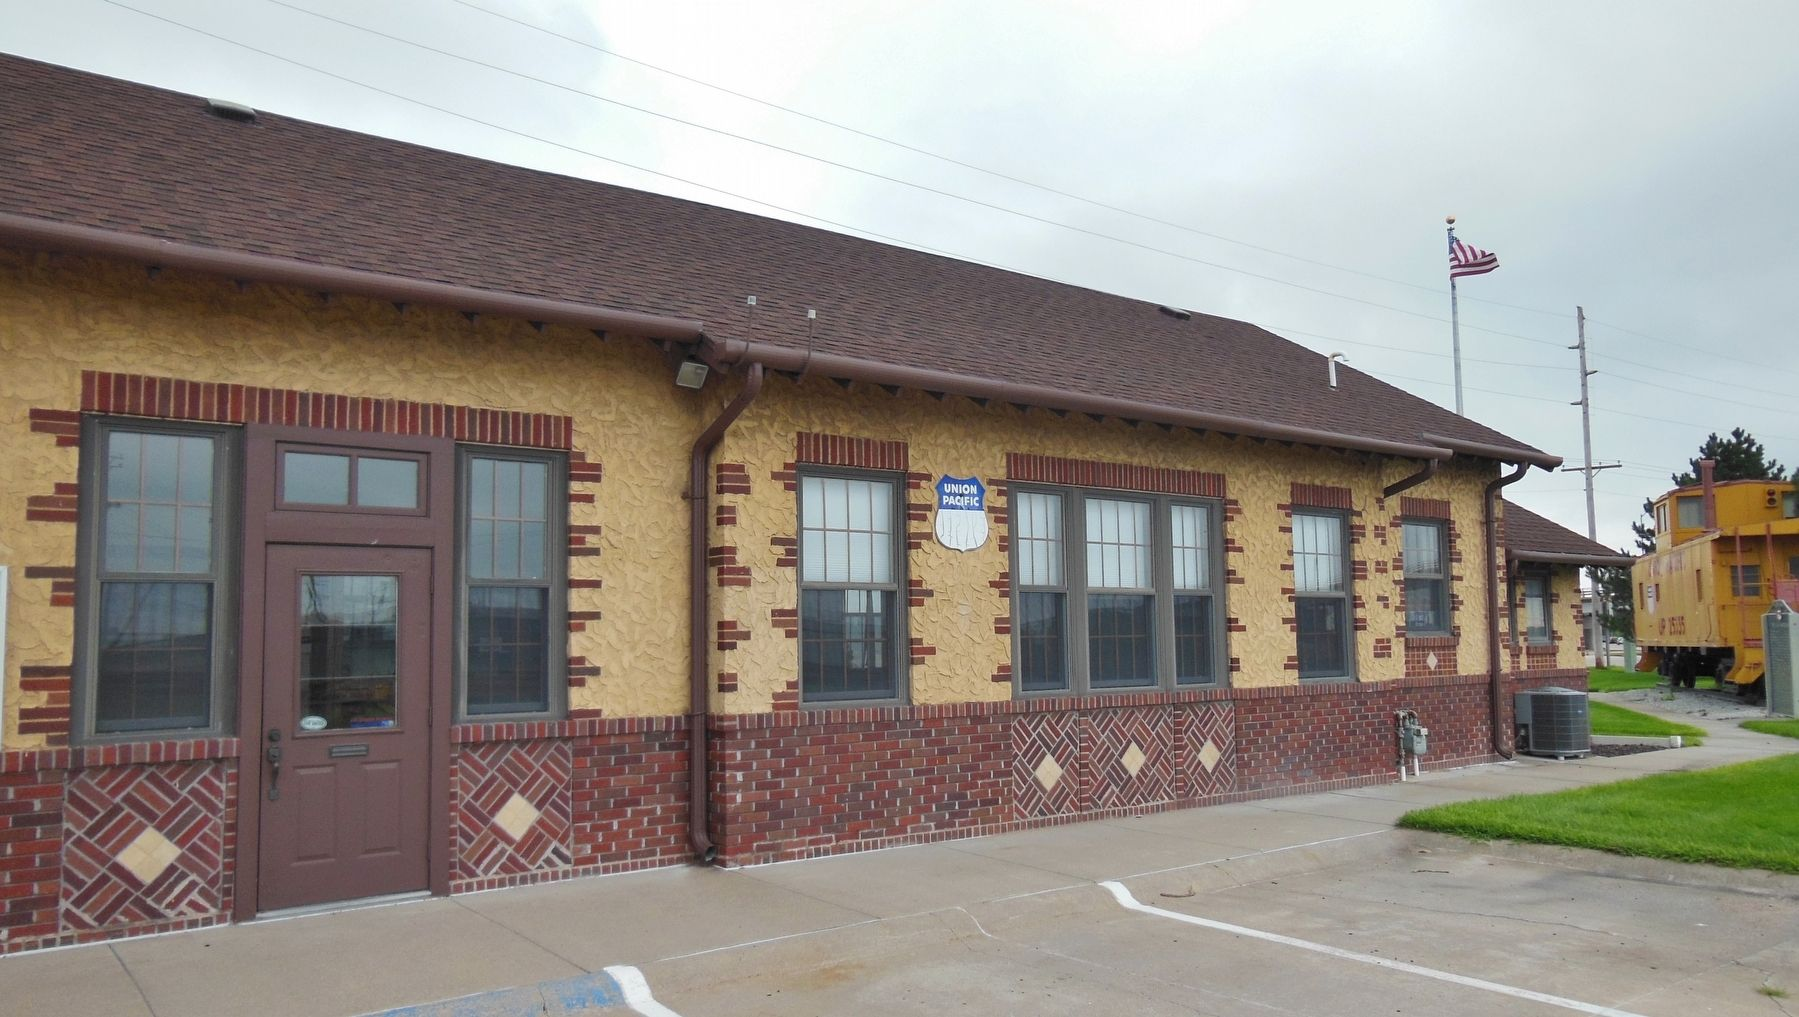 Former Cozad Union Pacific Railroad Depot image. Click for full size.